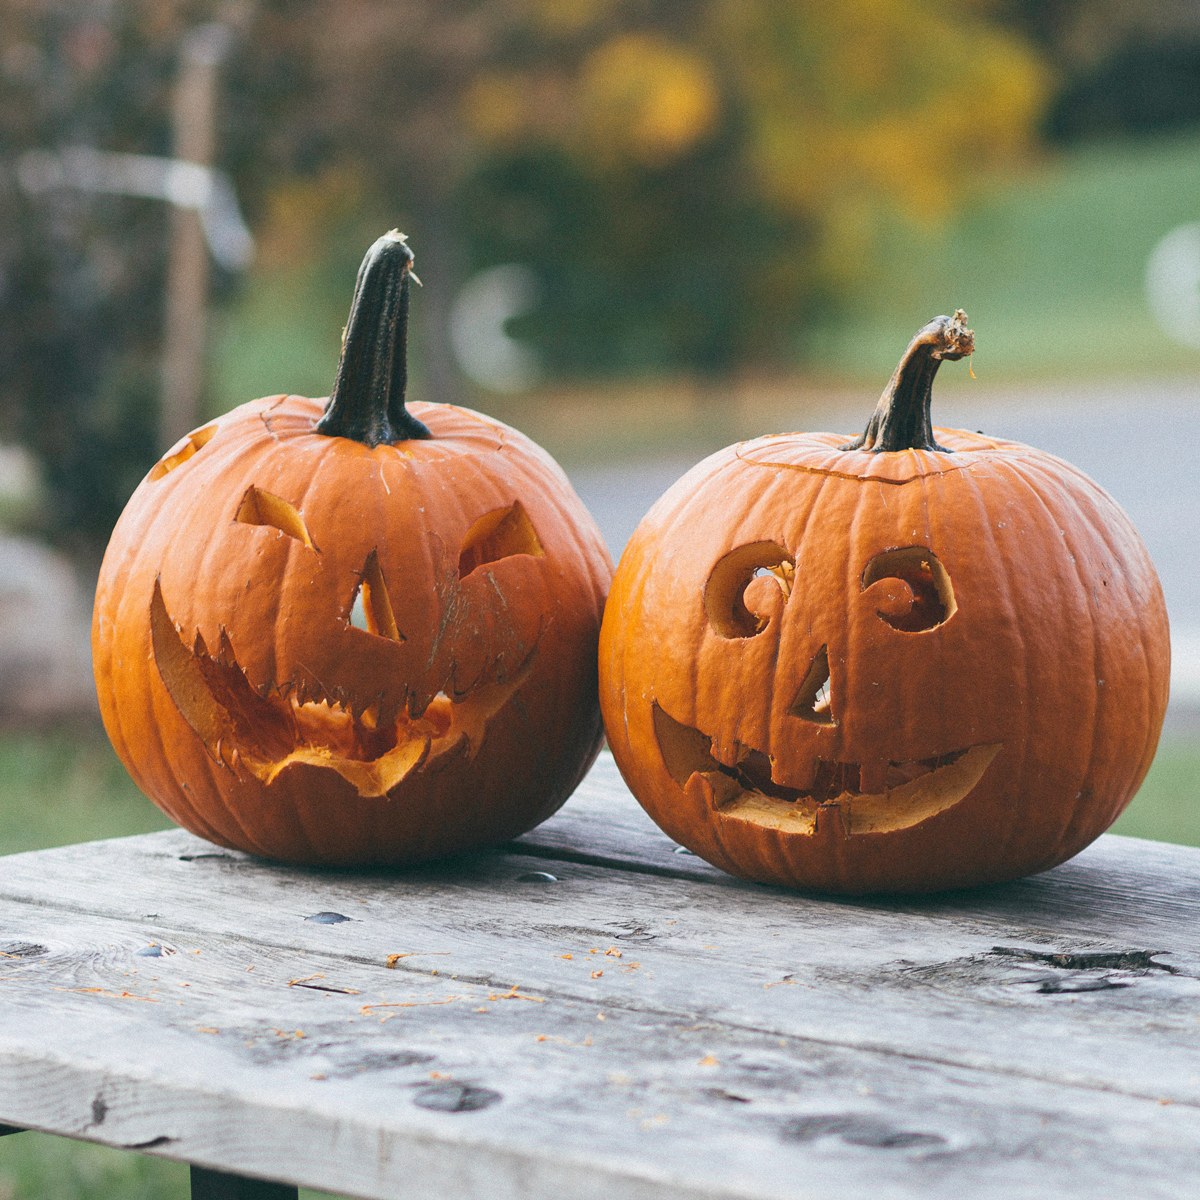 Two Halloween pumpkins with carved faces sitting on a wooden table outside